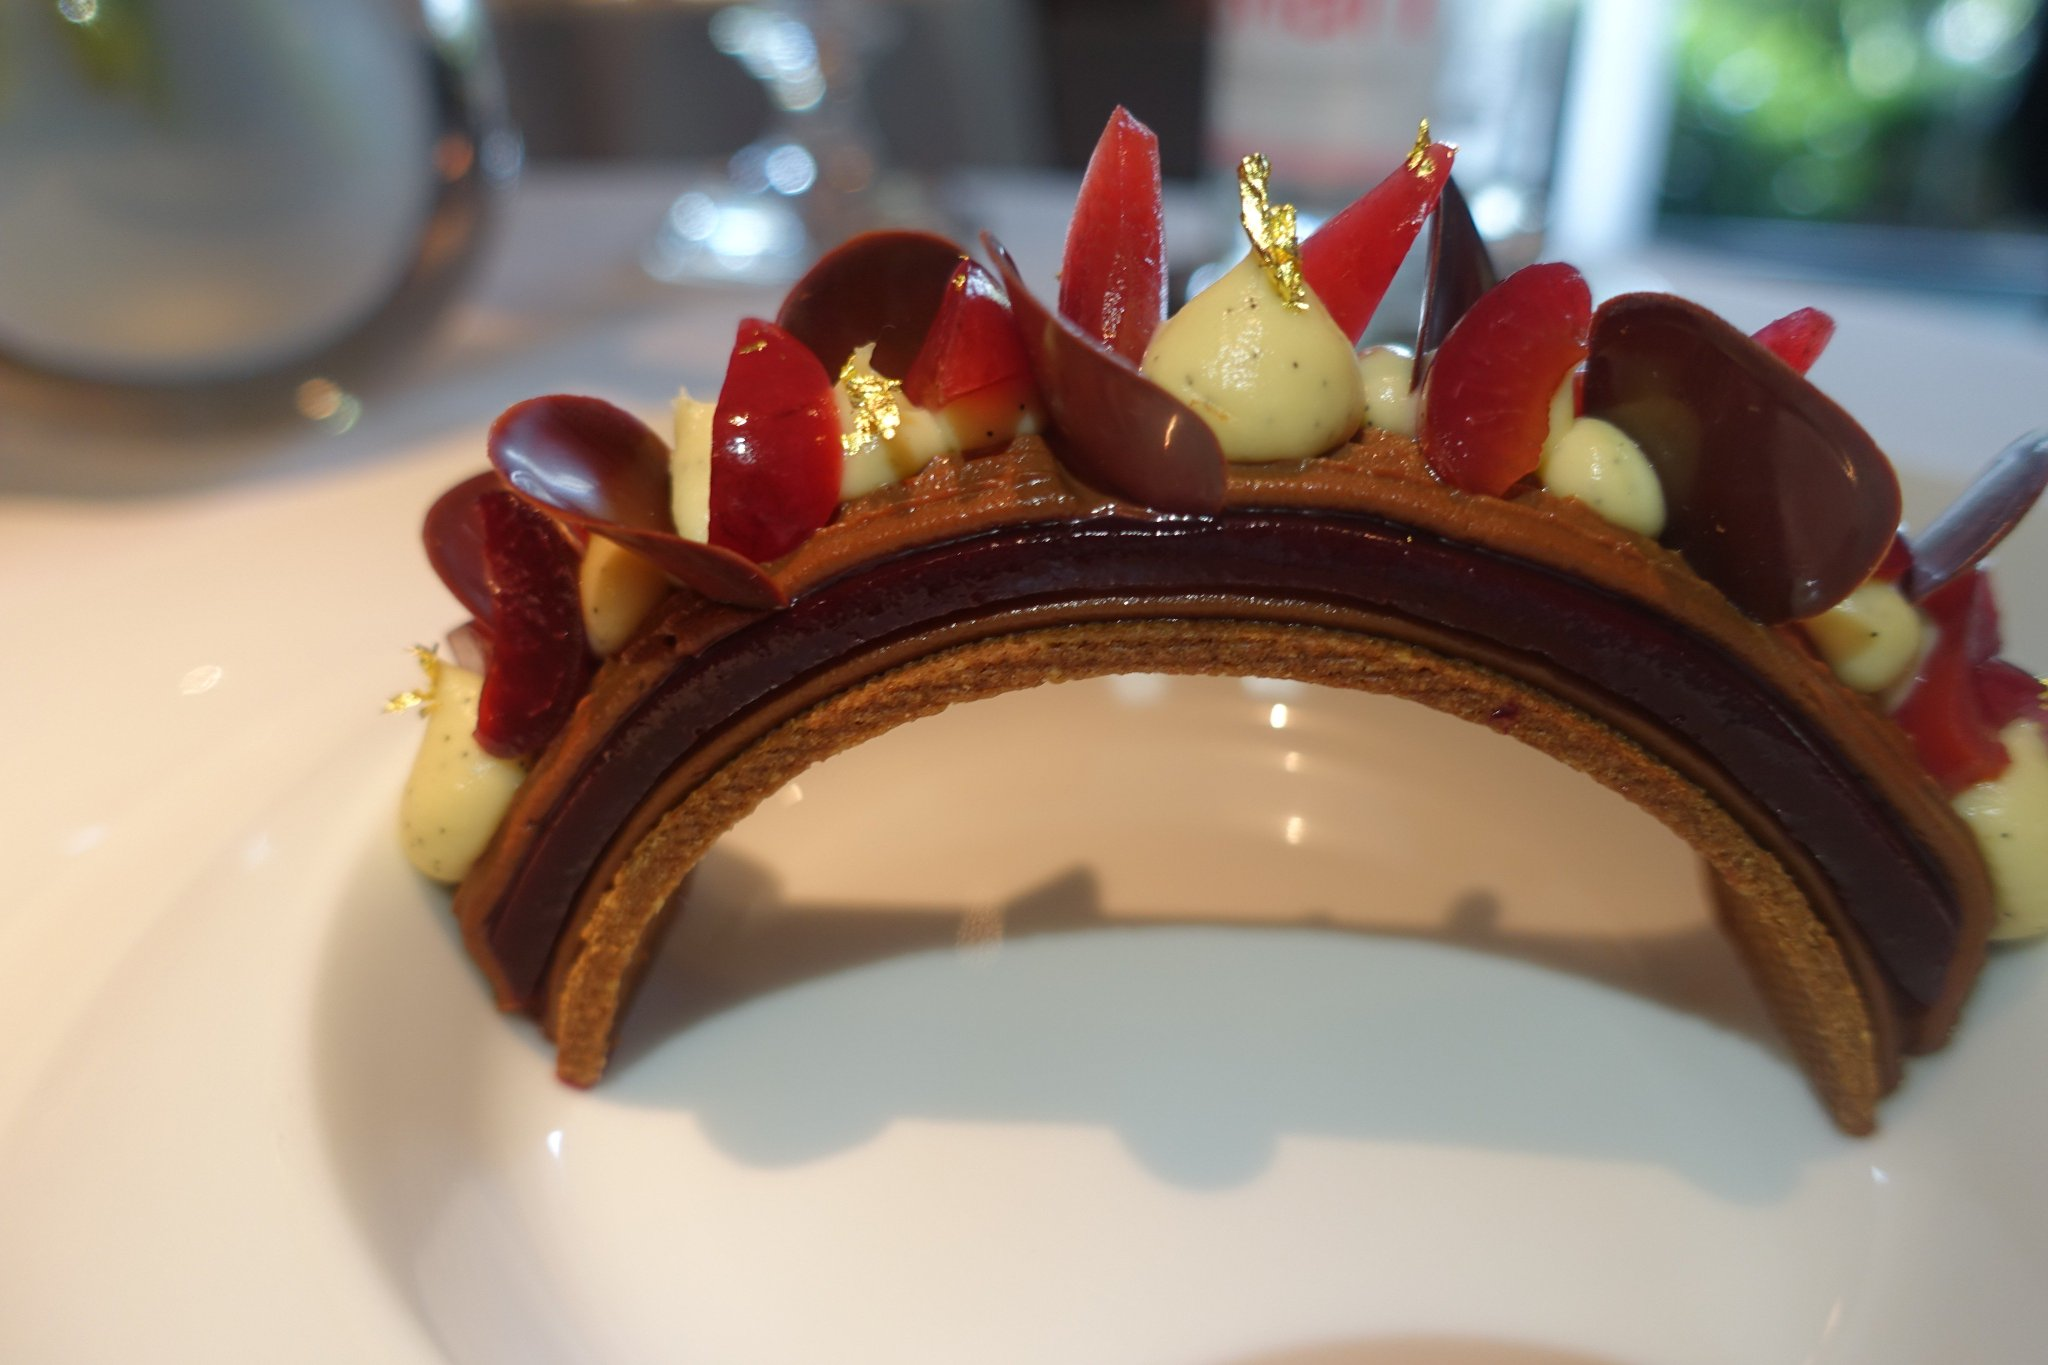 Andy Hayler On Twitter Quot Cherry And Chocolate Dessert At 3